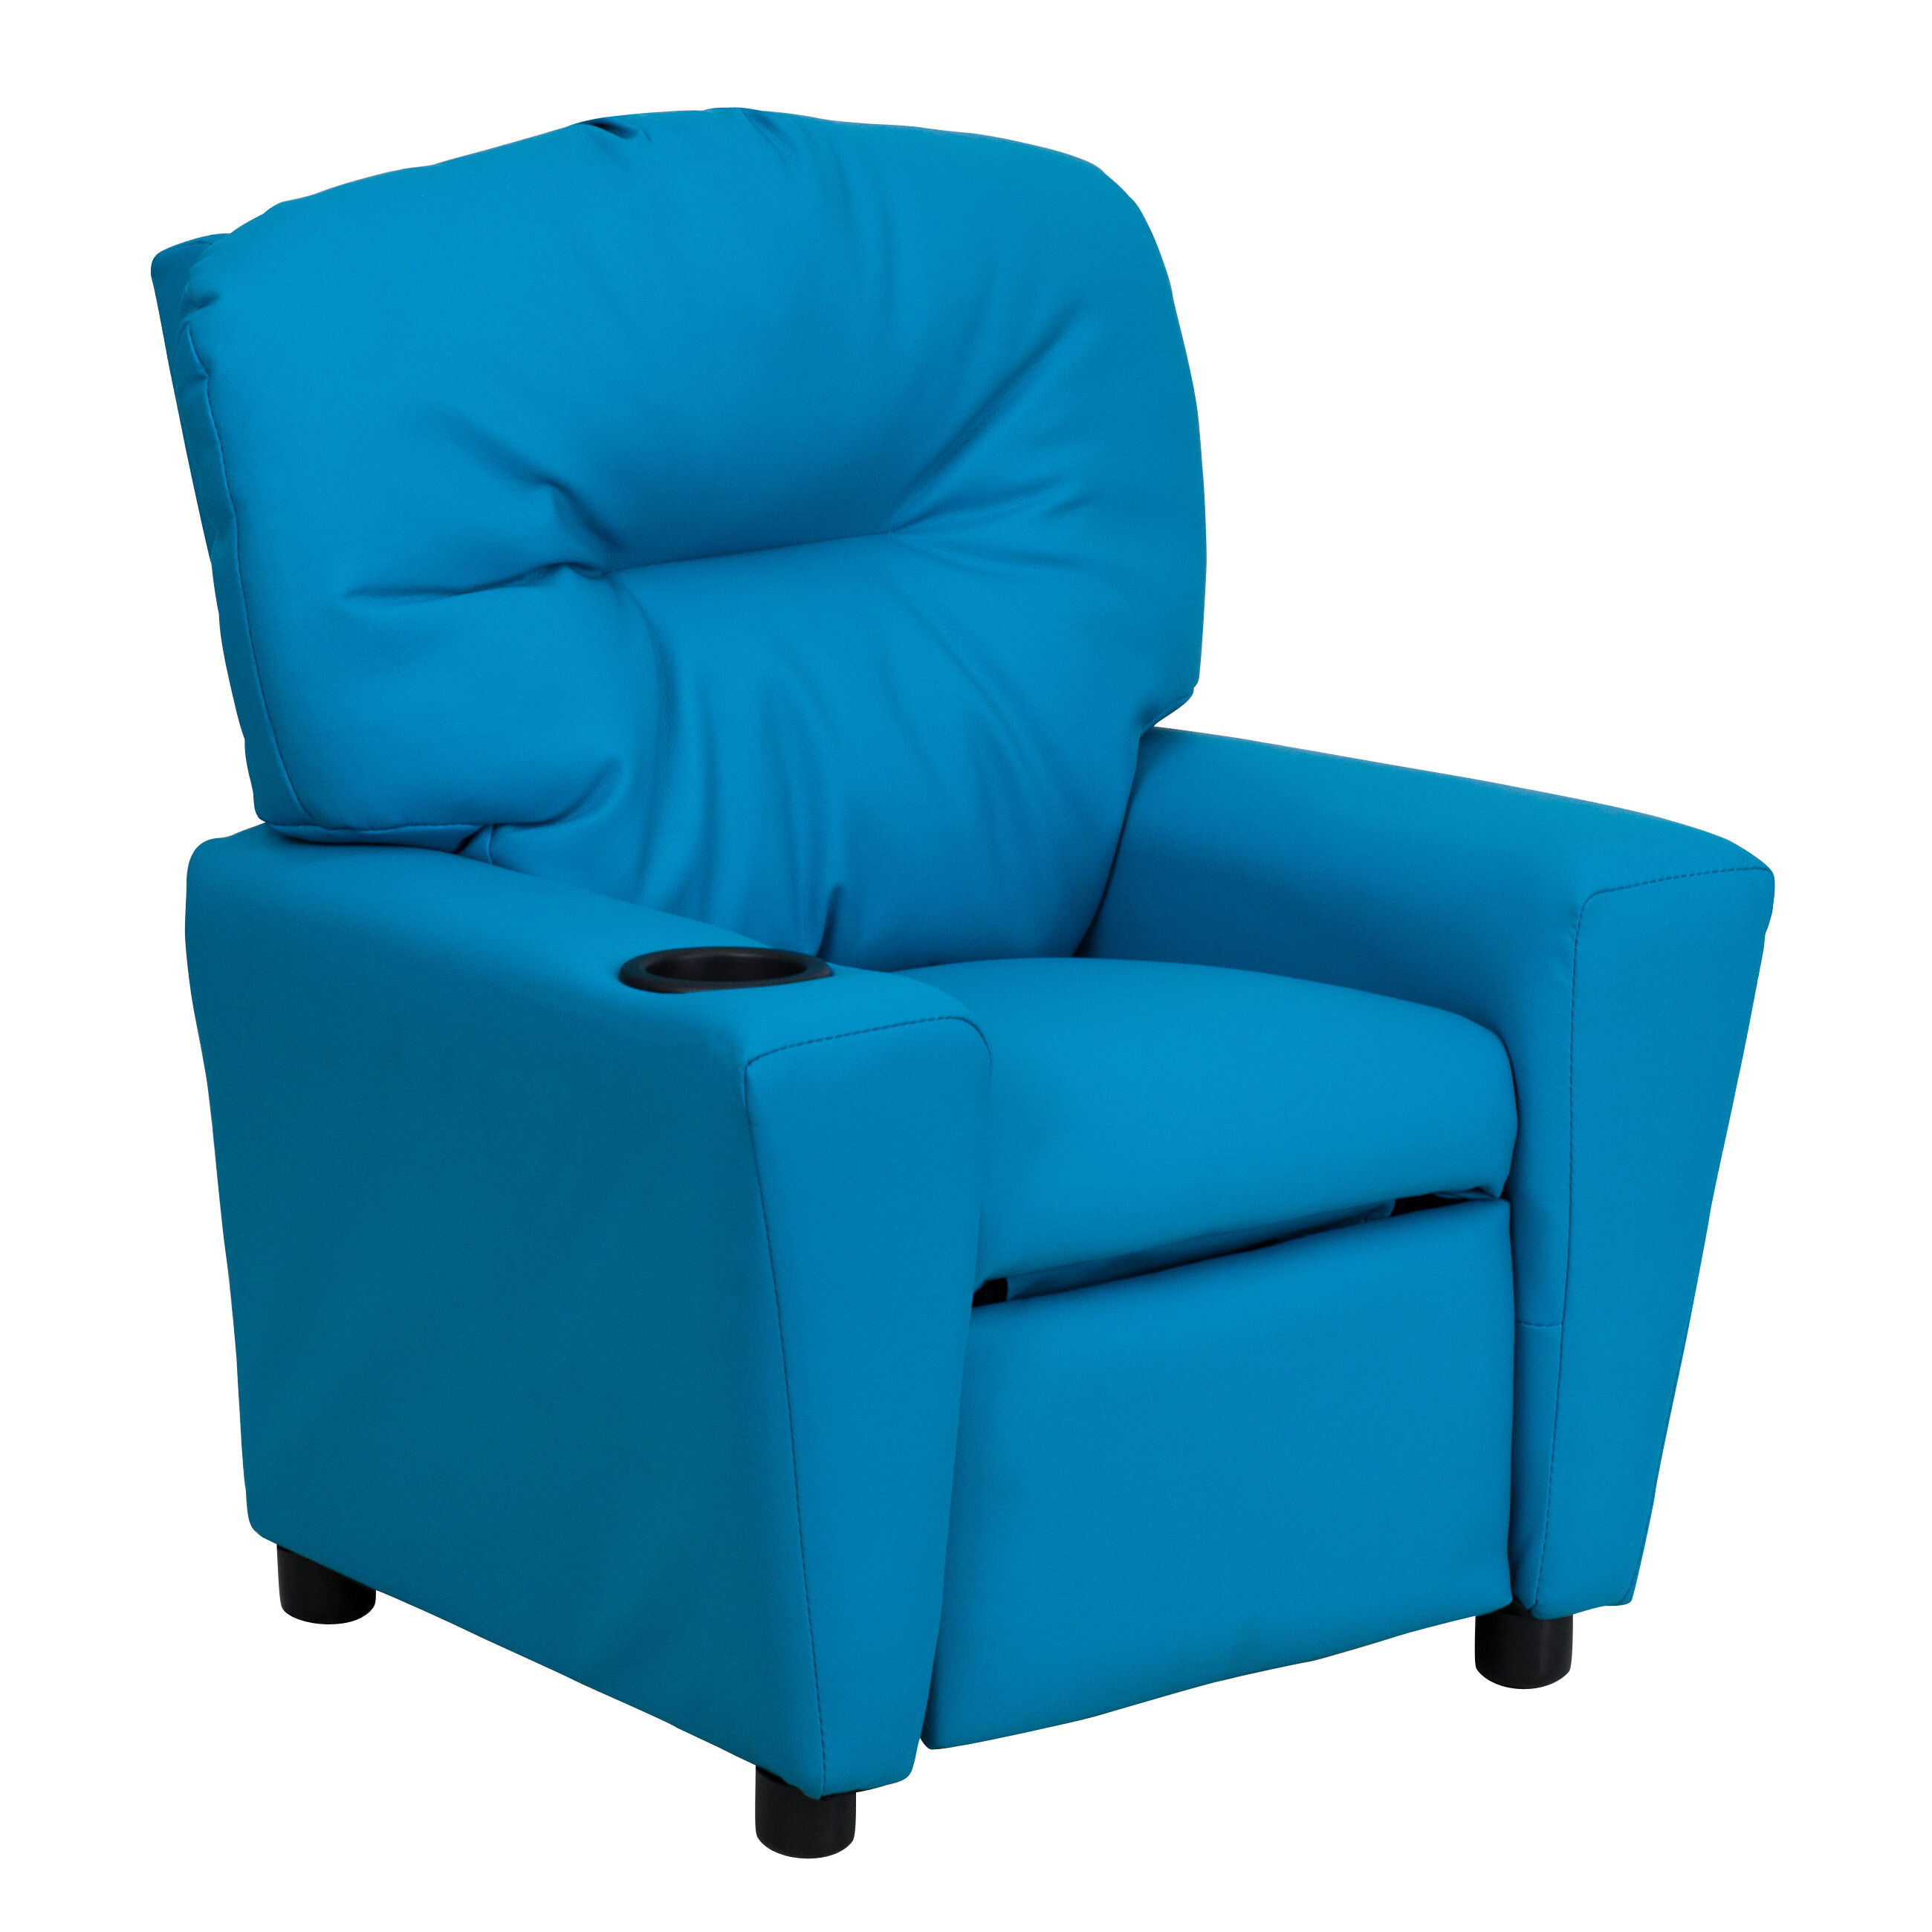 Kids Reclining Chair Turquoise Vinyl Kids Recliner Bt 7950 Kid Turq Gg